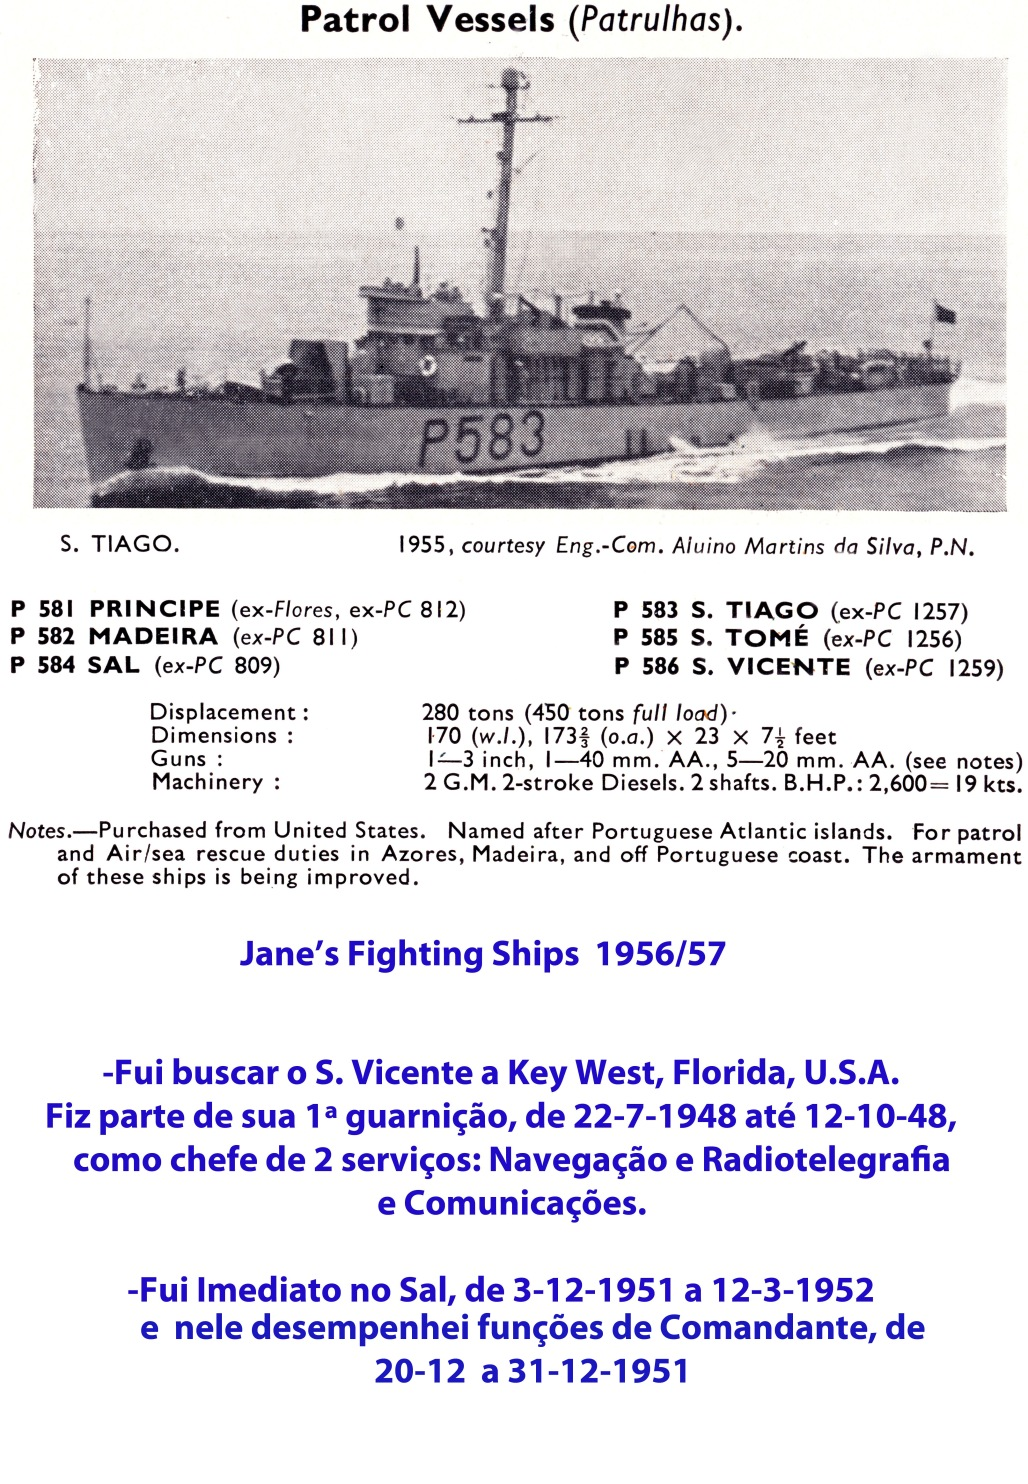 00148 Patrulhas classe S Vicente - Jane'sa Fighting Ships 1956-57